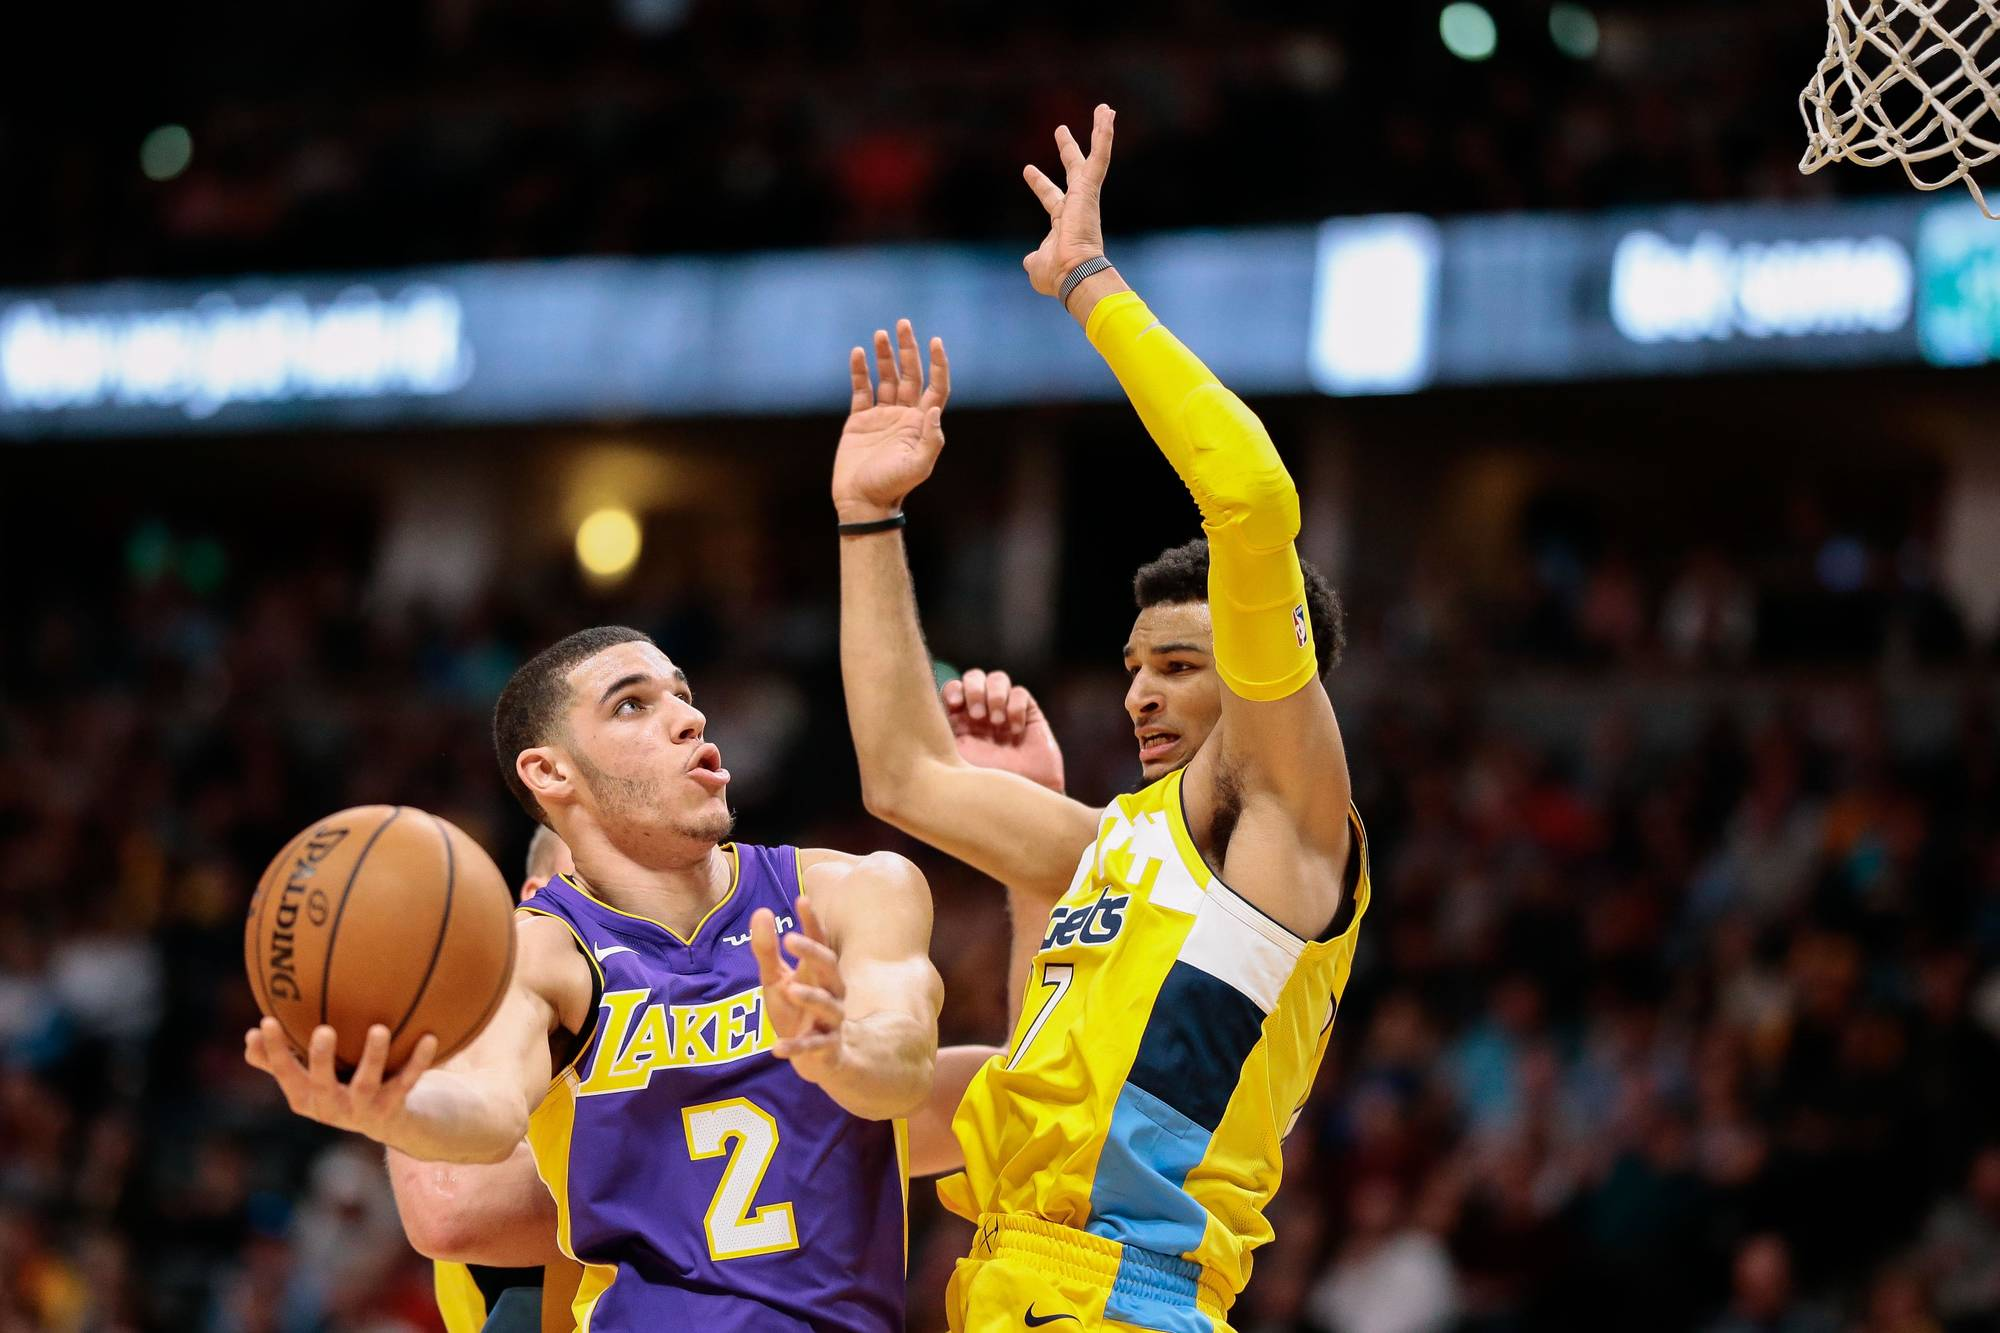 Aaron Gordon On End Of Magic-Lakers: 'We Feel Cheated'